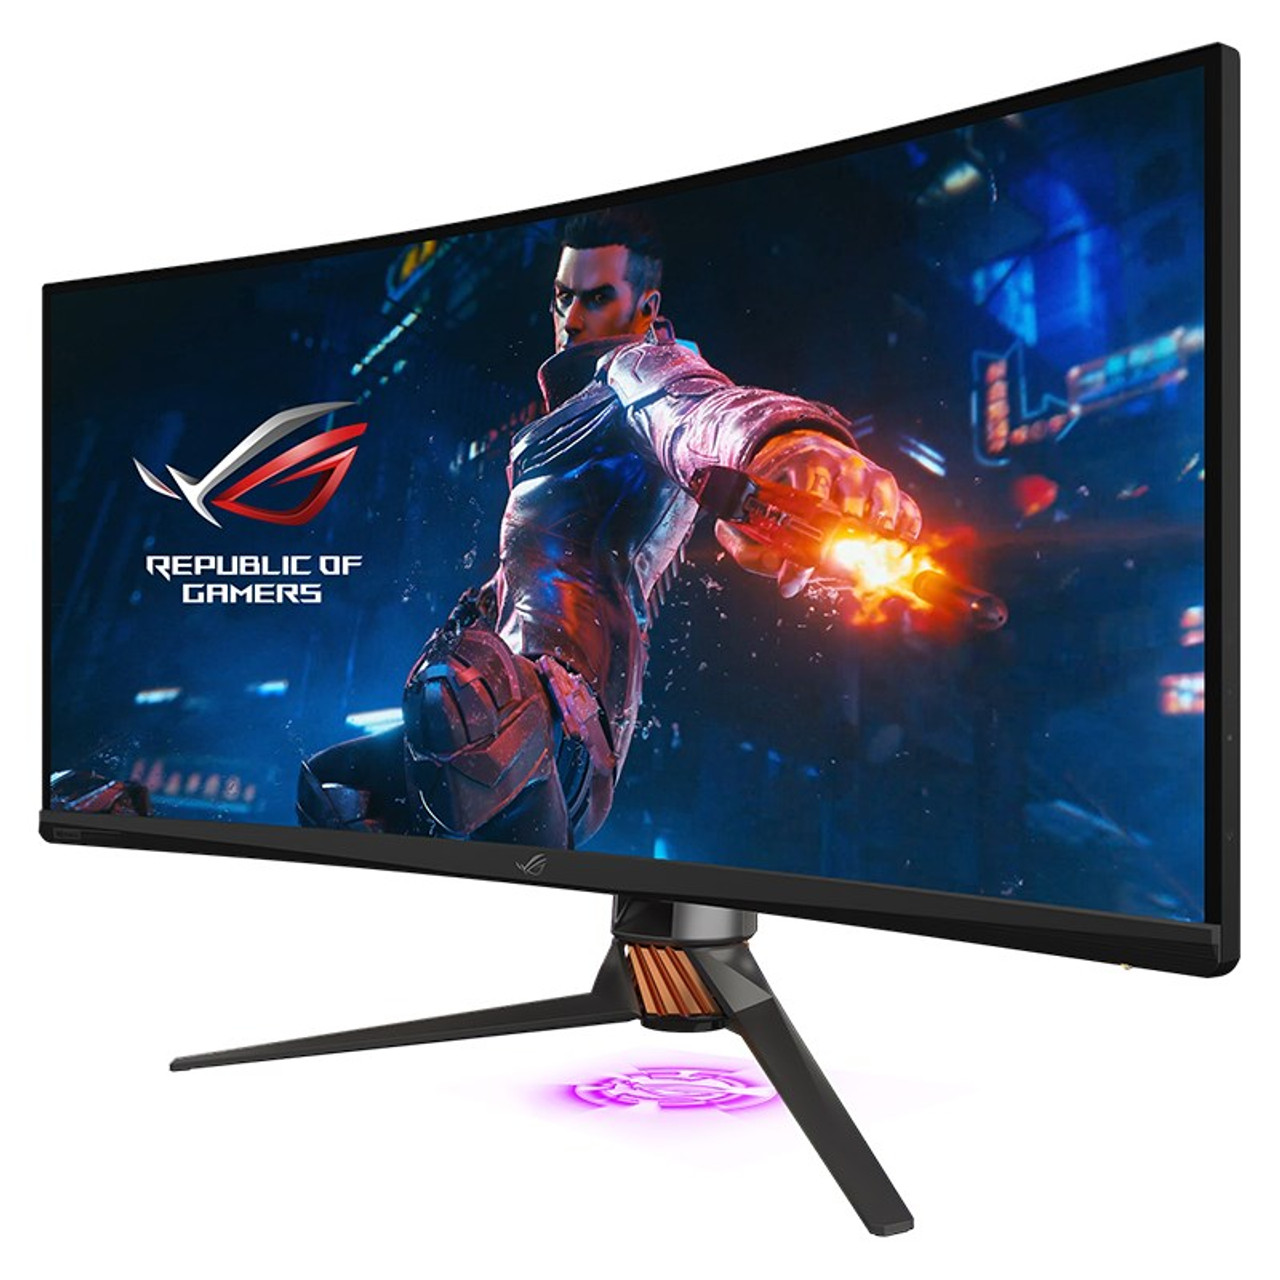 Product image for Asus ROG PG35VQ UWQHD 200hz G-Sync QLED HDR FALD 35in Monitor | CX Computer Superstore